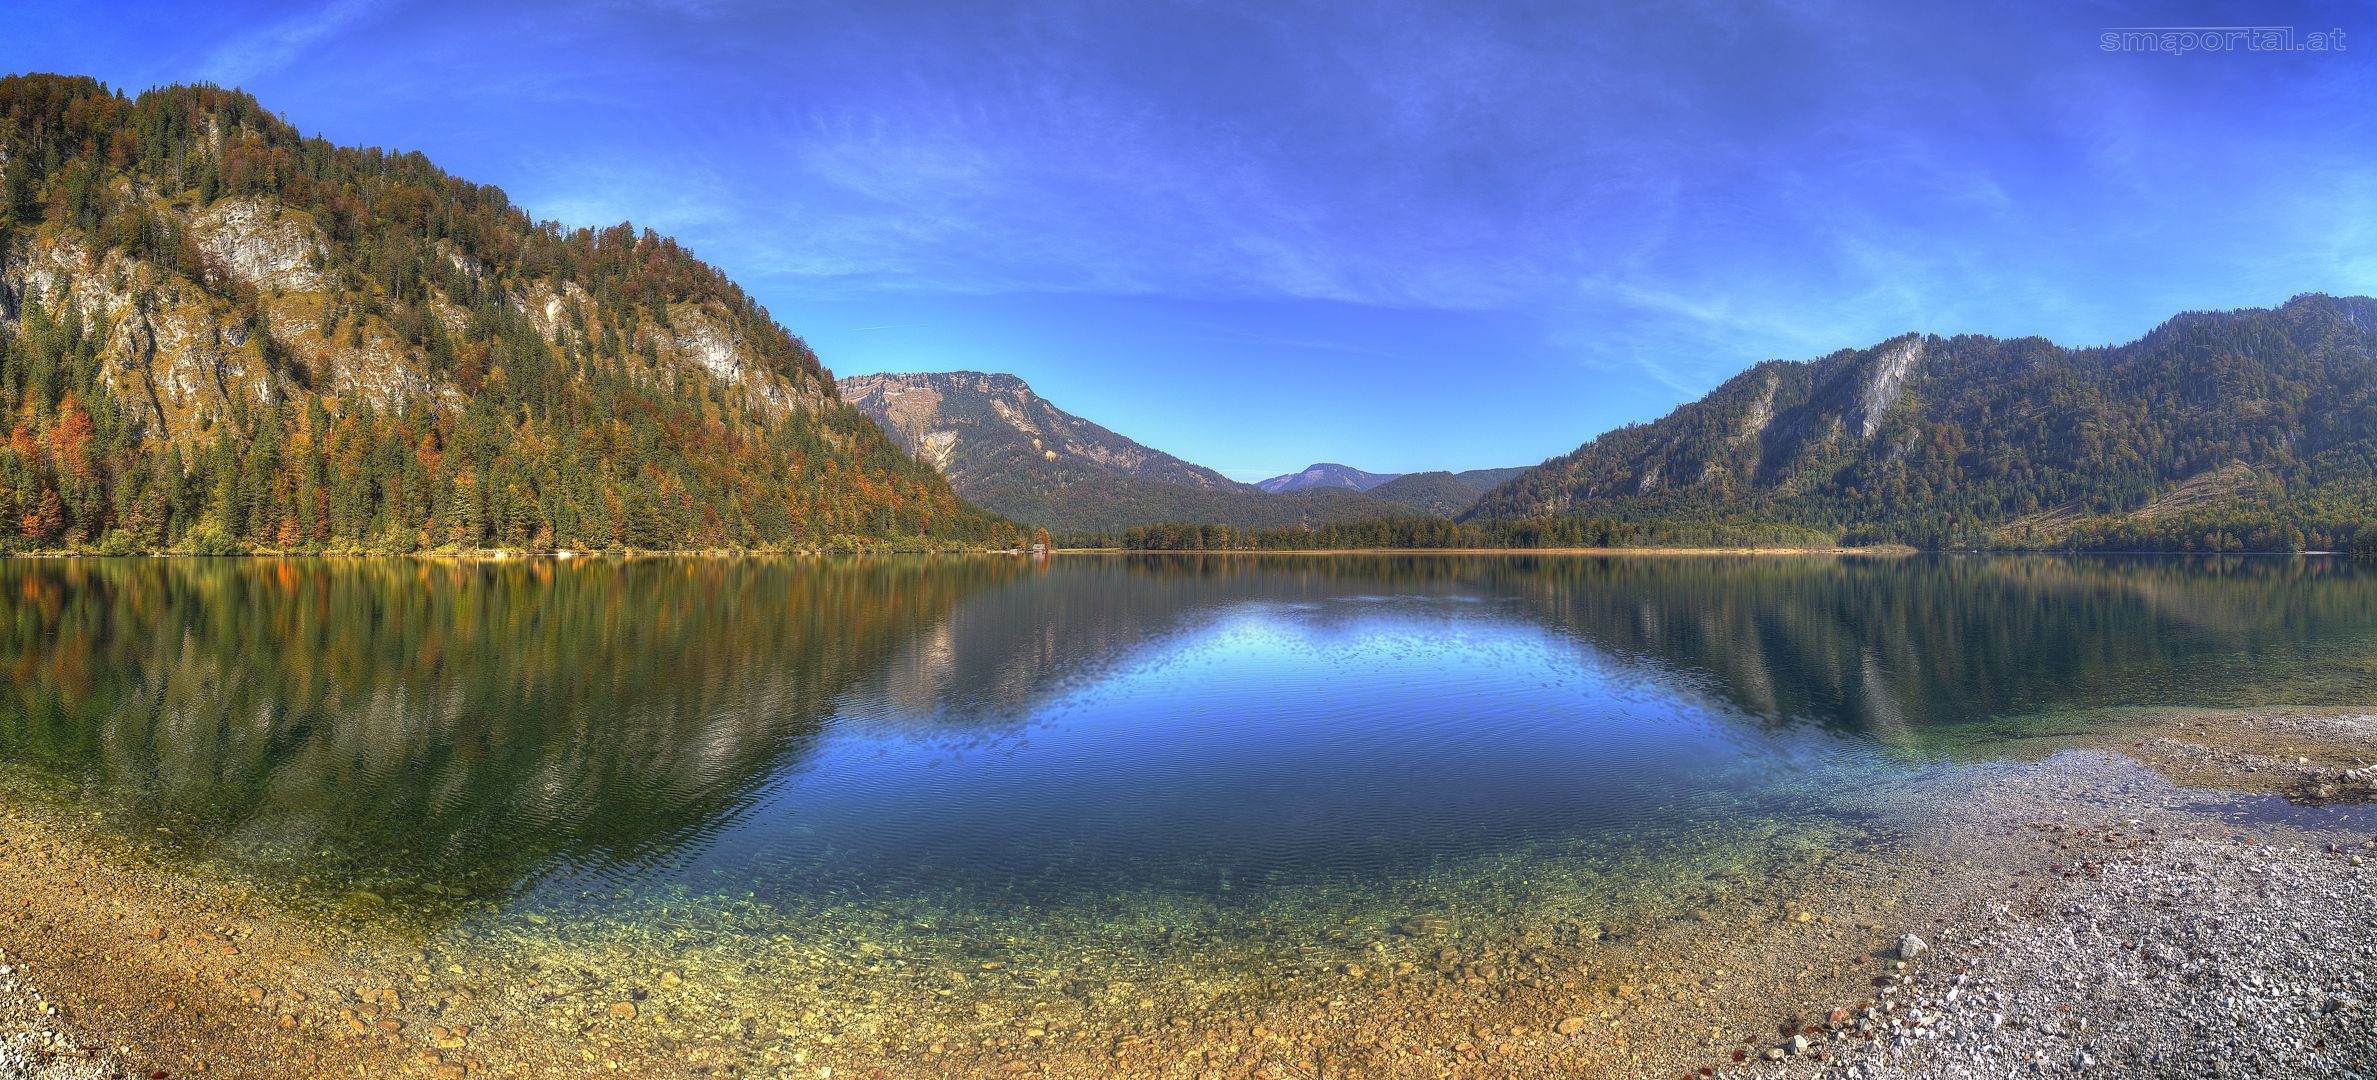 Offensee - IMG_5659_60_61